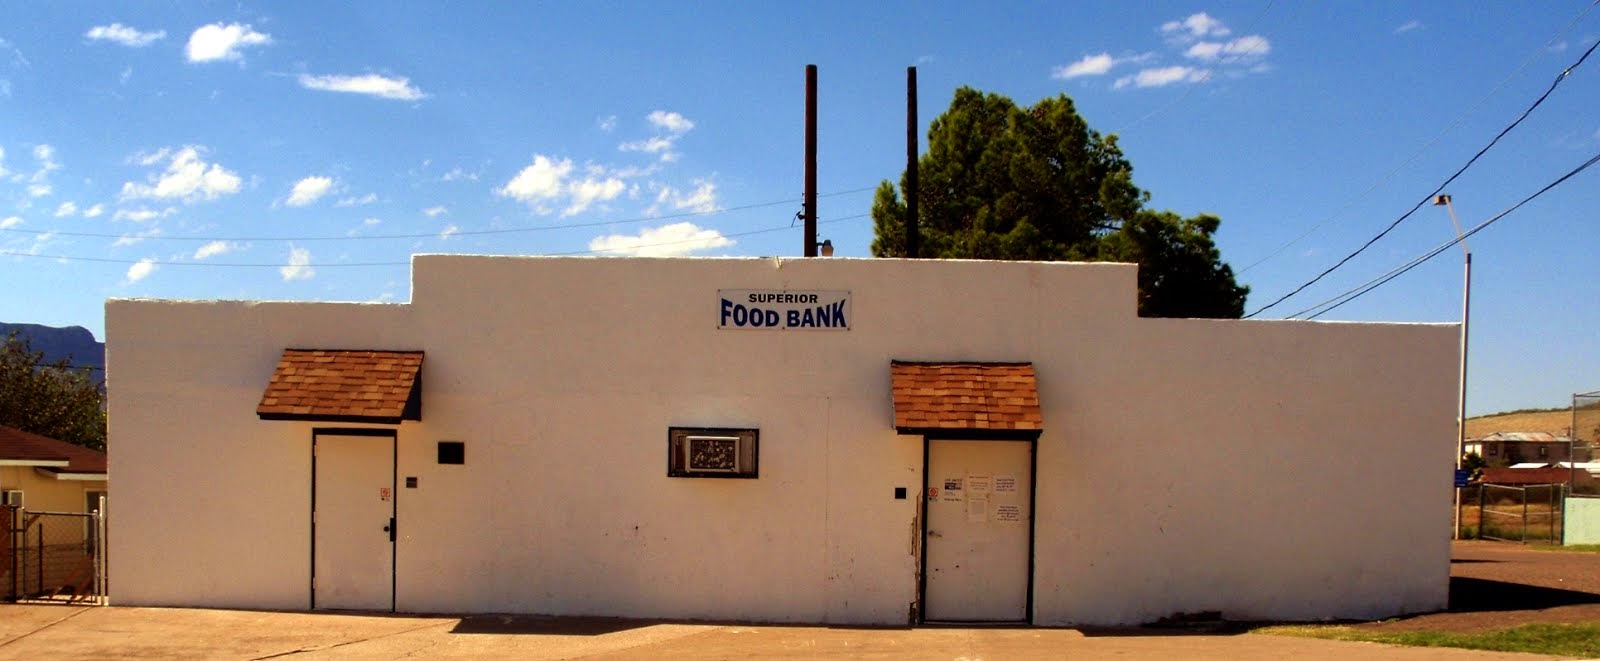 Superior Food Bank